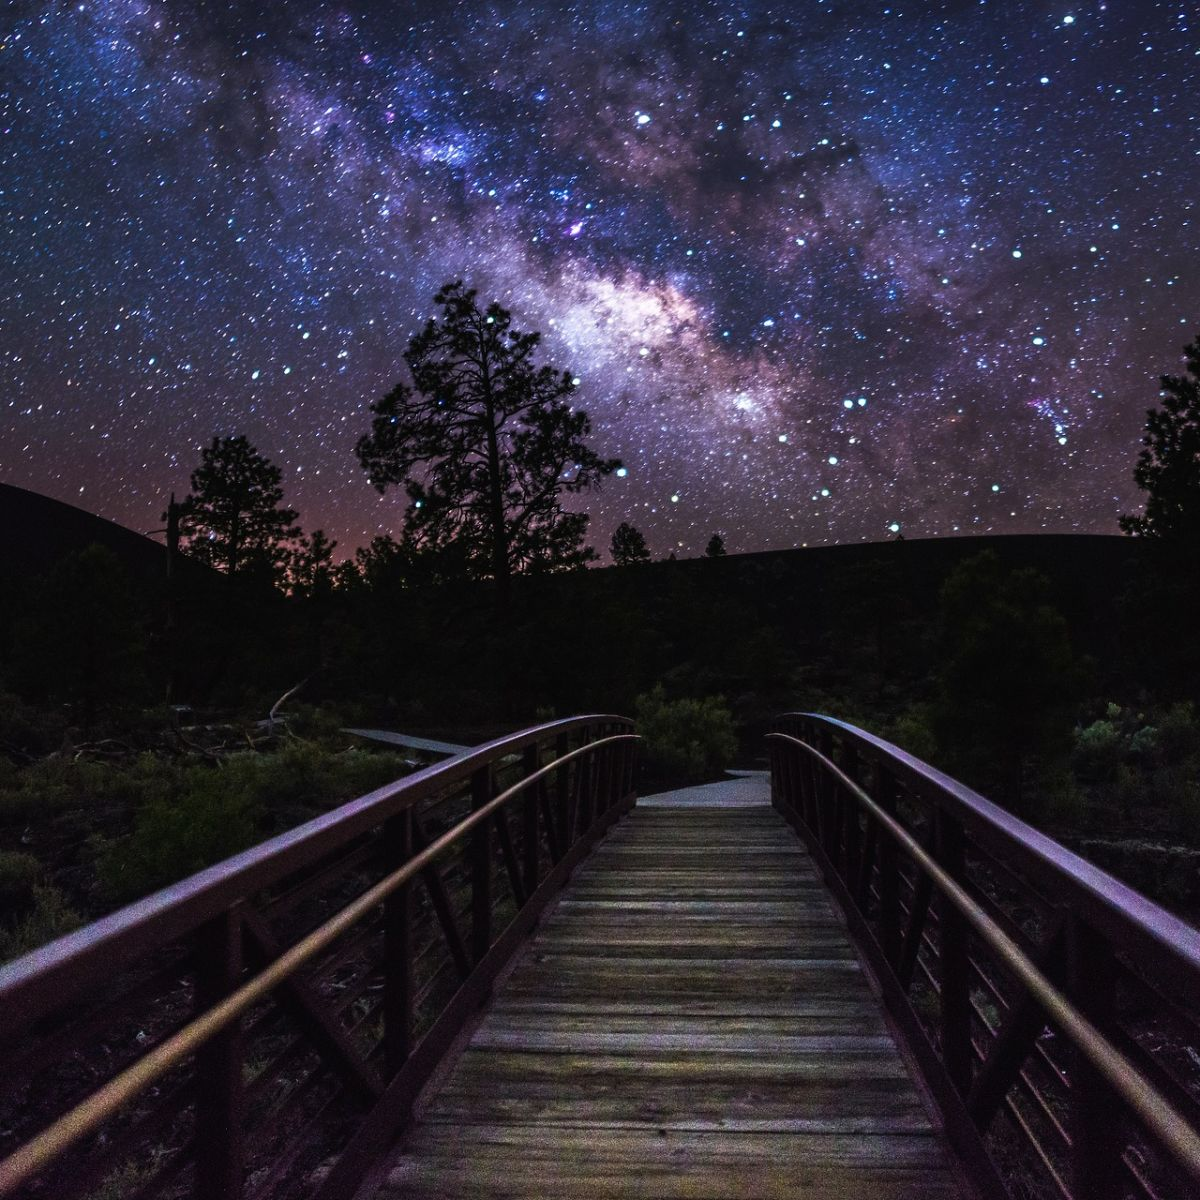 Night landscape, galaxy, milky way, stars, bridge, way, scenic